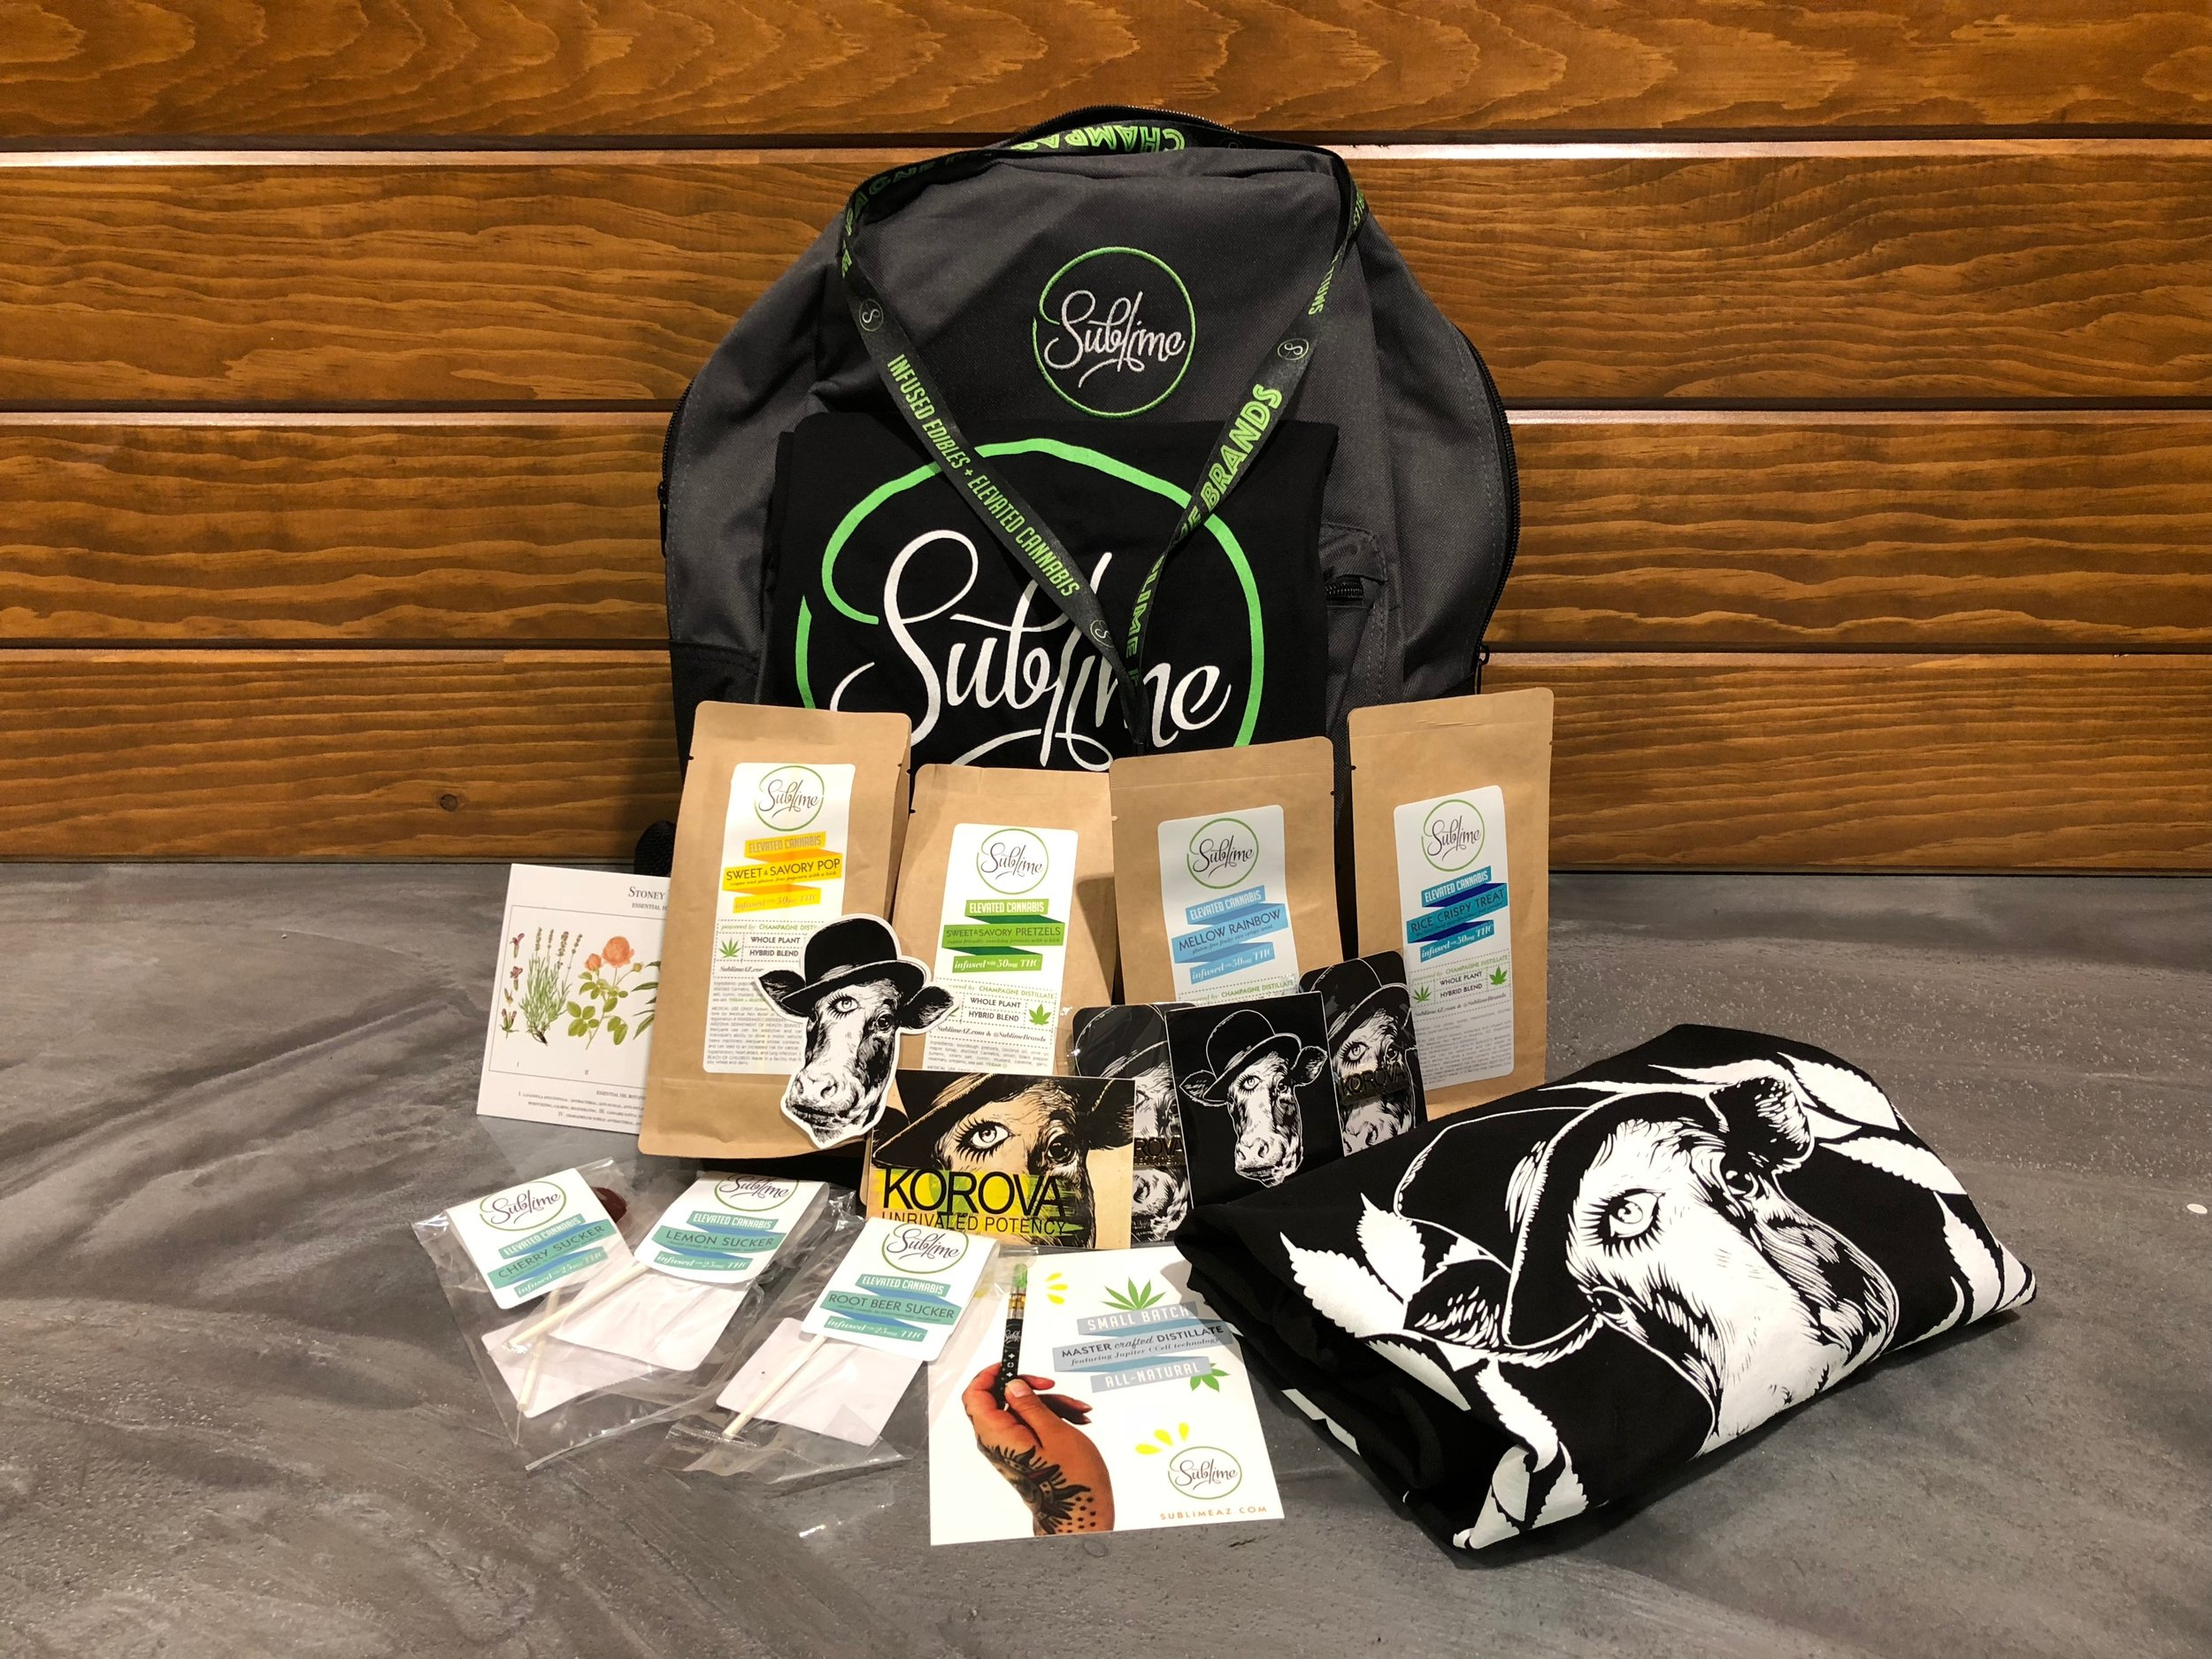 Sublime Edibles Raffle Giveaway - Enter for chance to win this epic giveaway pictured!!